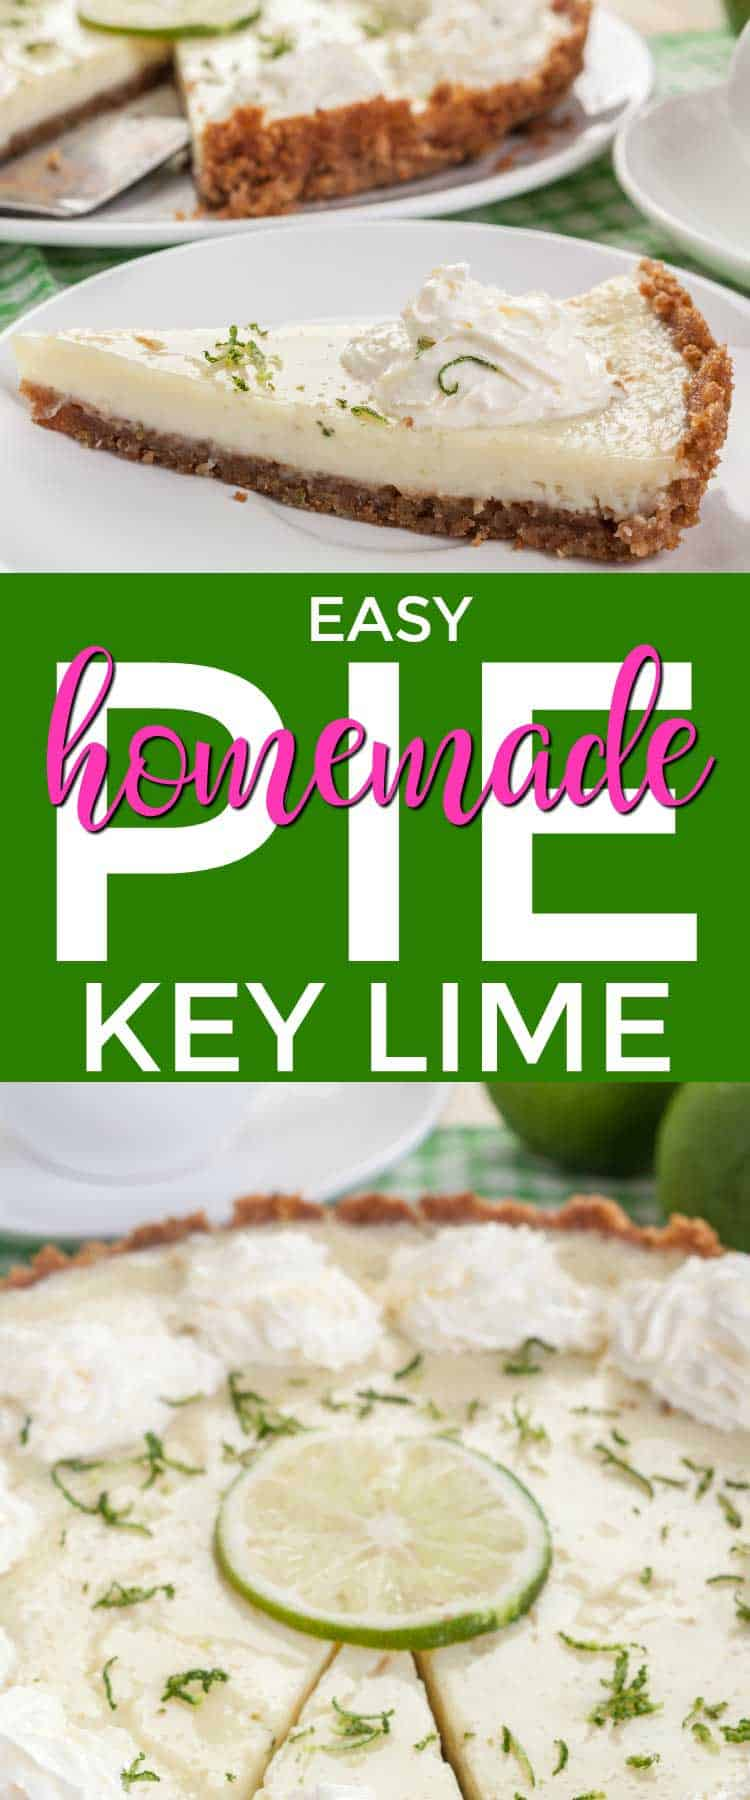 key lime pie side view slice of lime on top with slice of pie on white plate